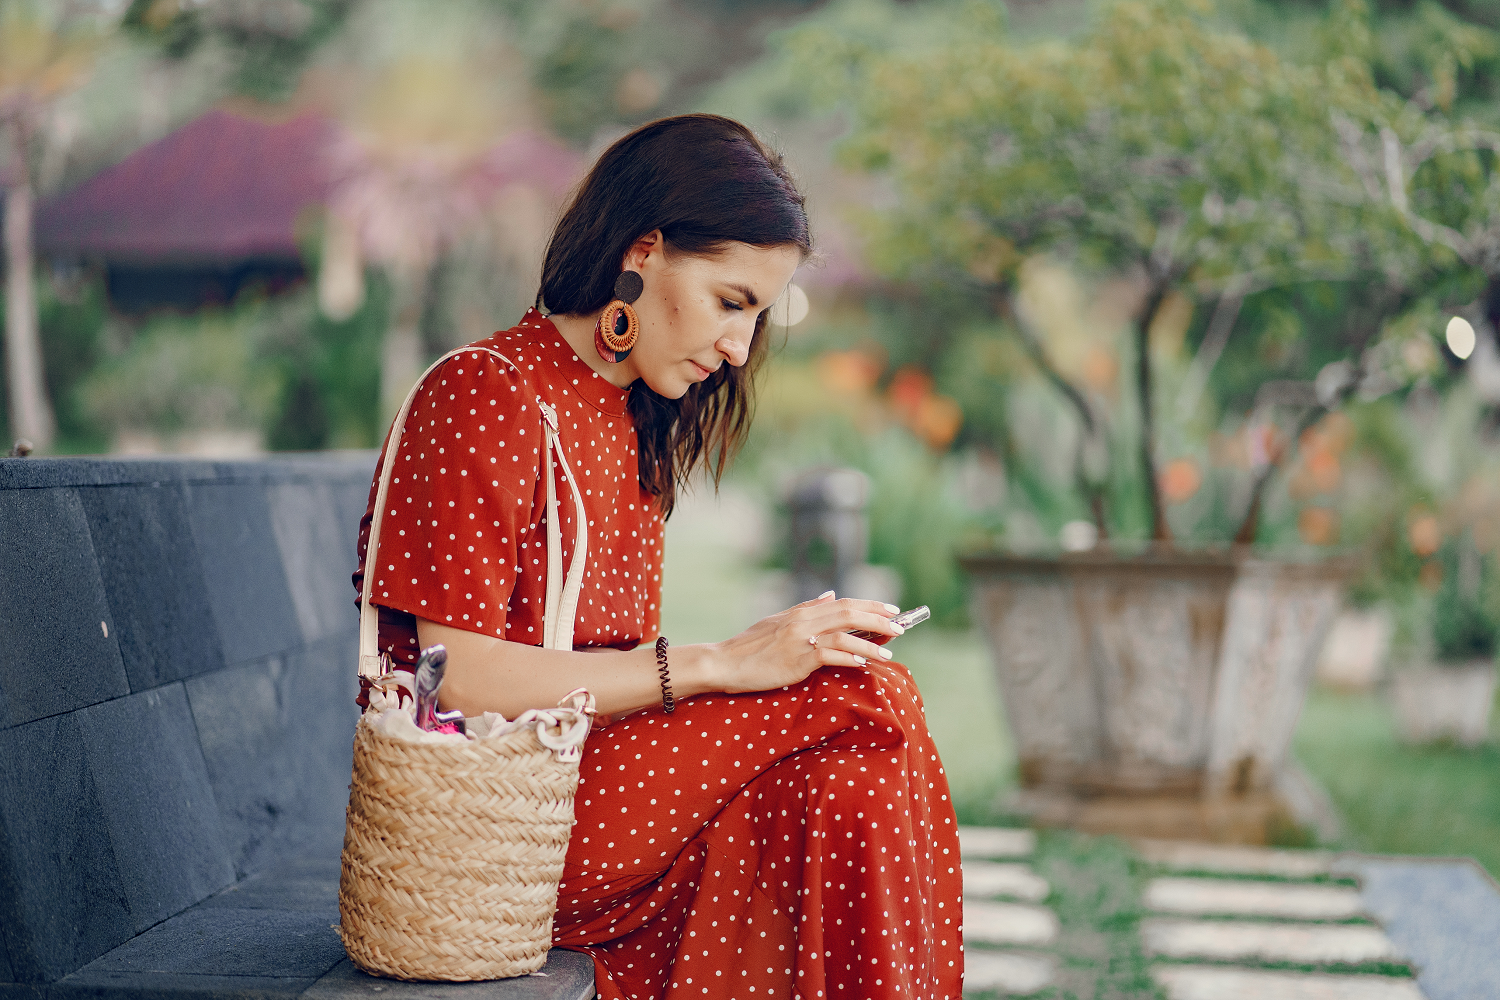 Woman in red dress using smartphone on bench, as part of charity response handling (1)